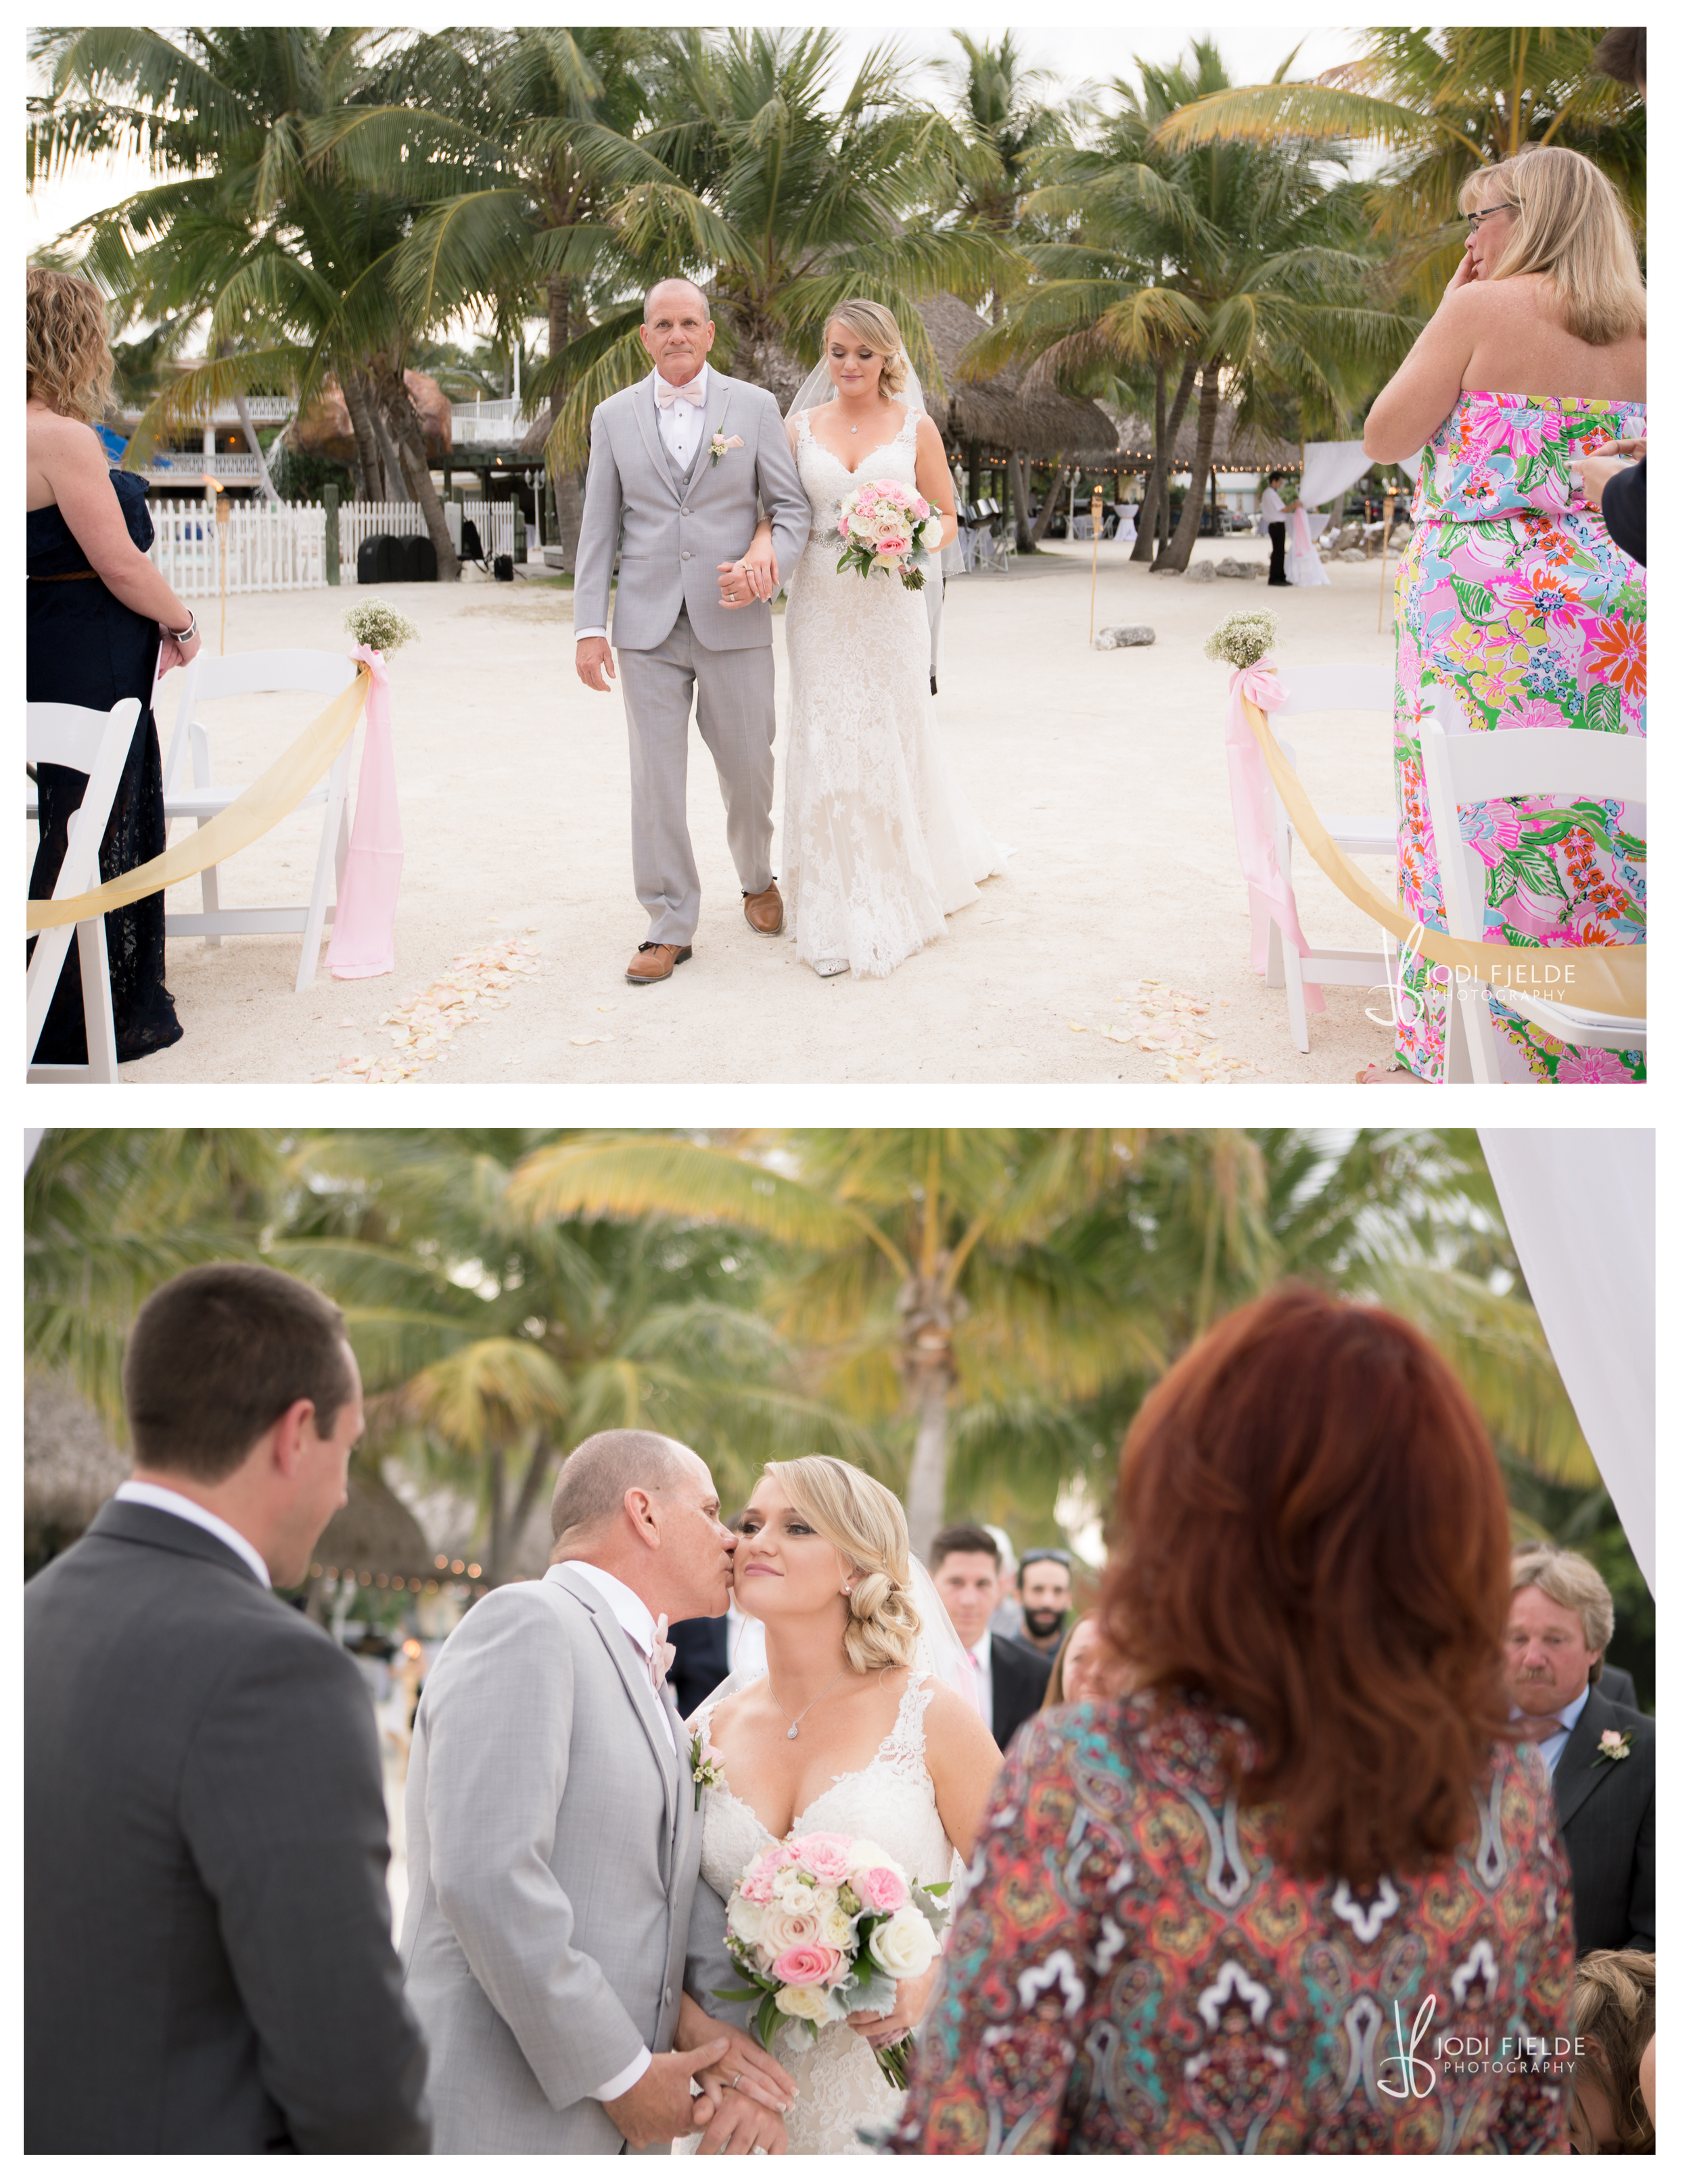 Cocconut_Cove_&_ Marina_ wedding_Kalie_and_Kurt 24.jpg